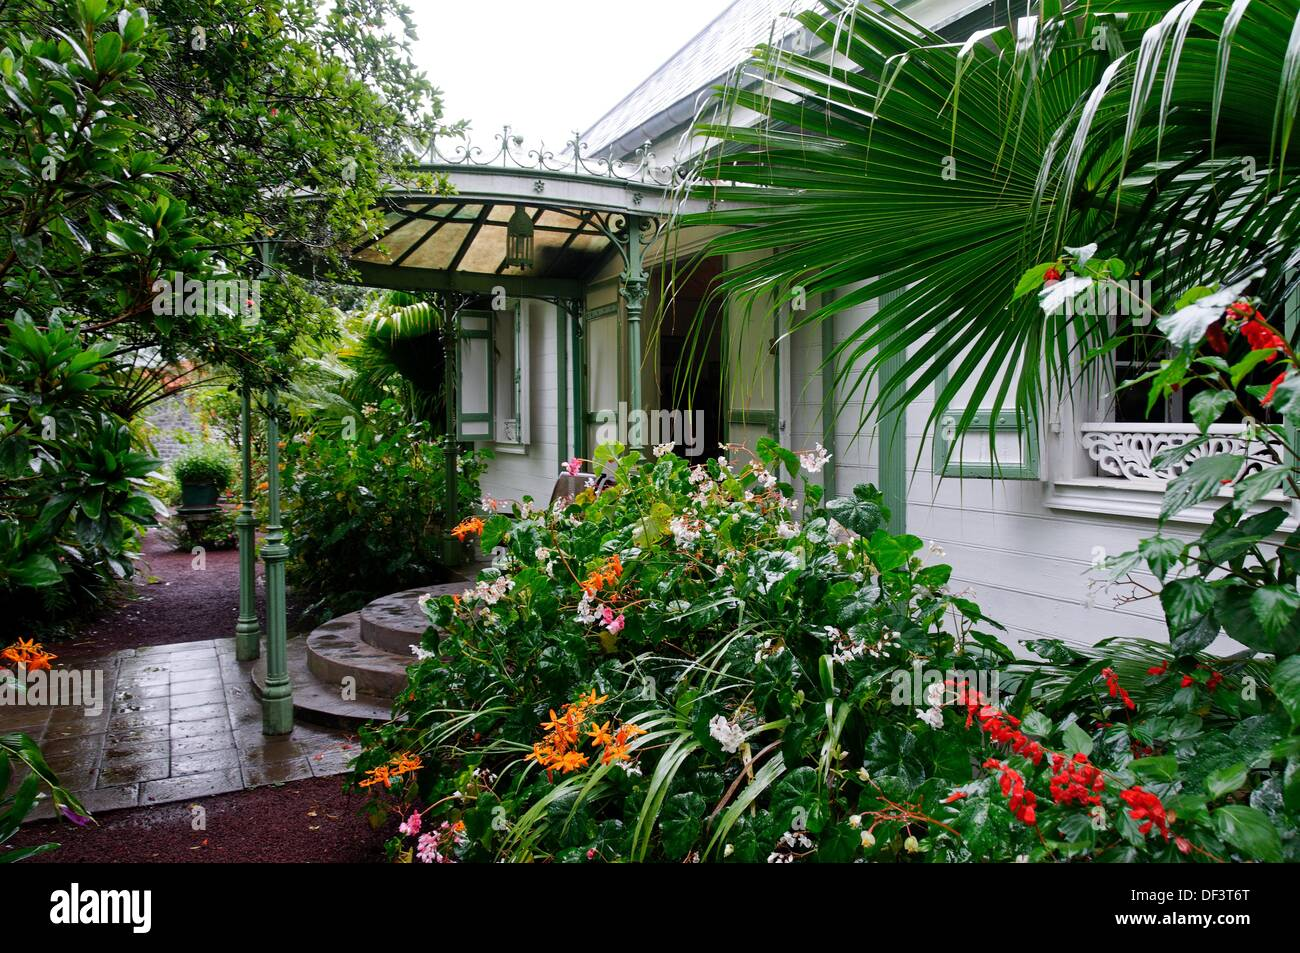 Amazing Folio´s House Traditional Creole House And Garden, Hell Bourg Village,  Cirque De Salazie, Reunion Island, France